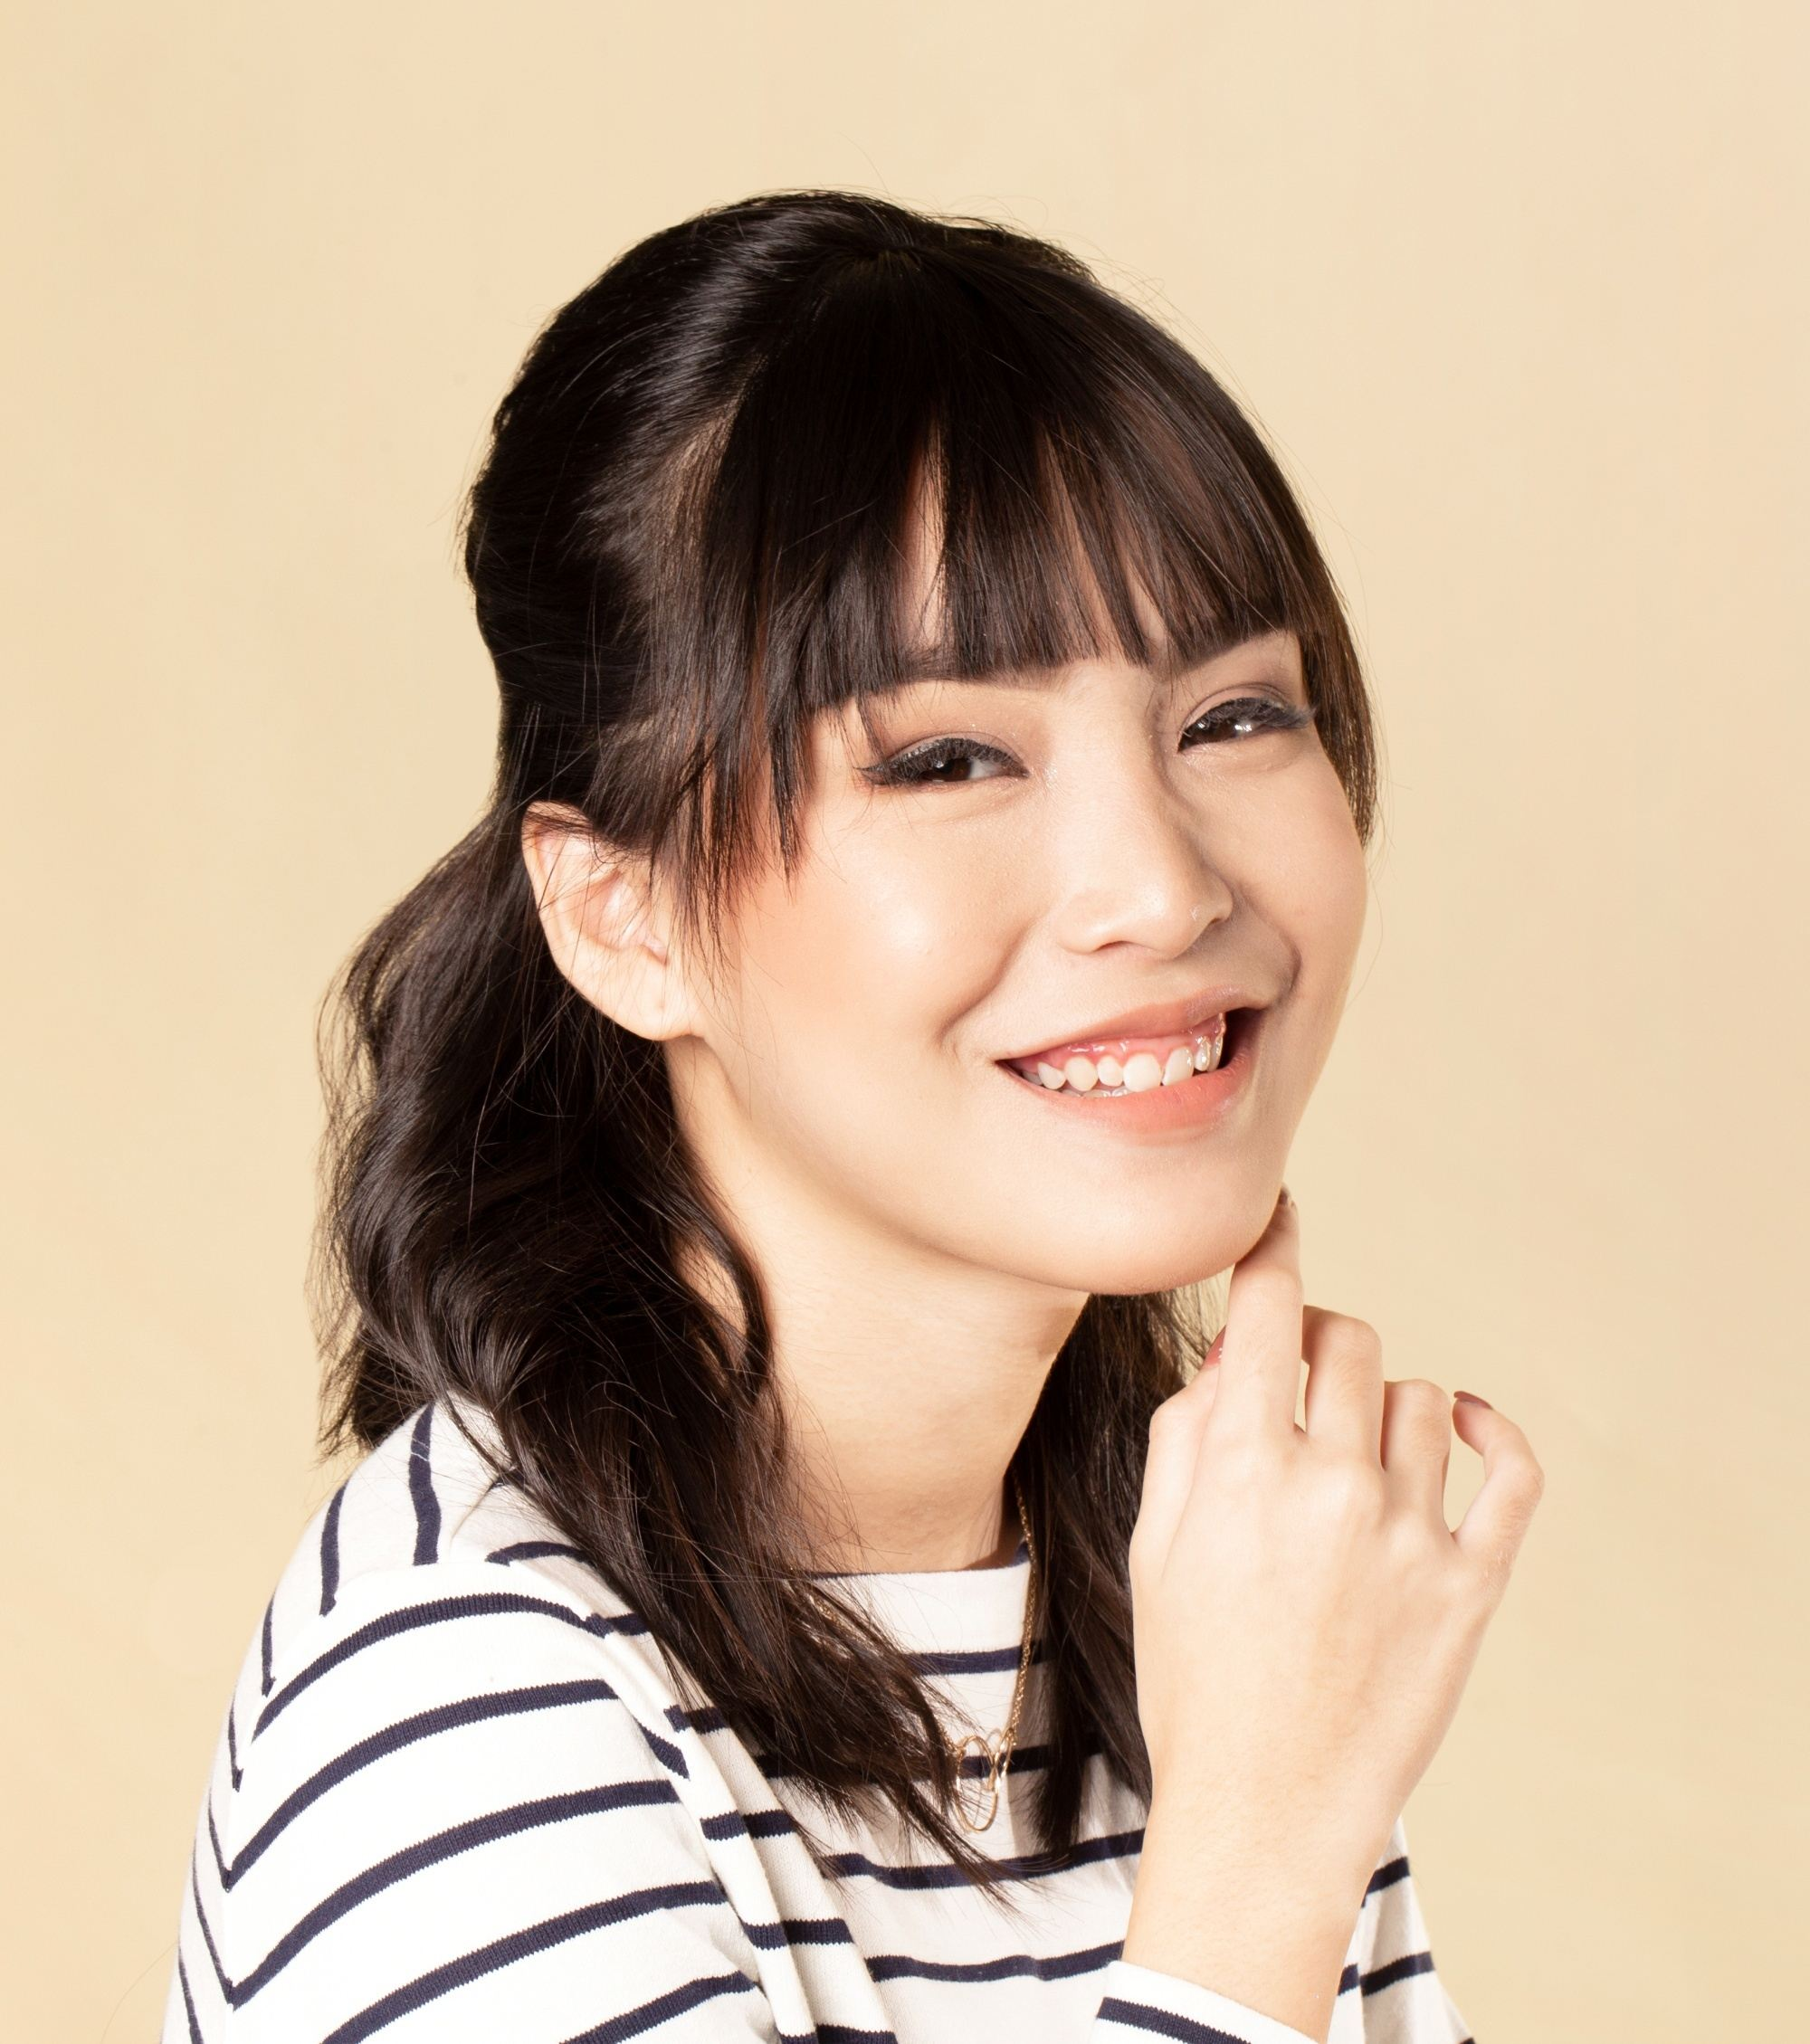 Asian woman with a half updo shoulder length hairstyle with bangs smiling